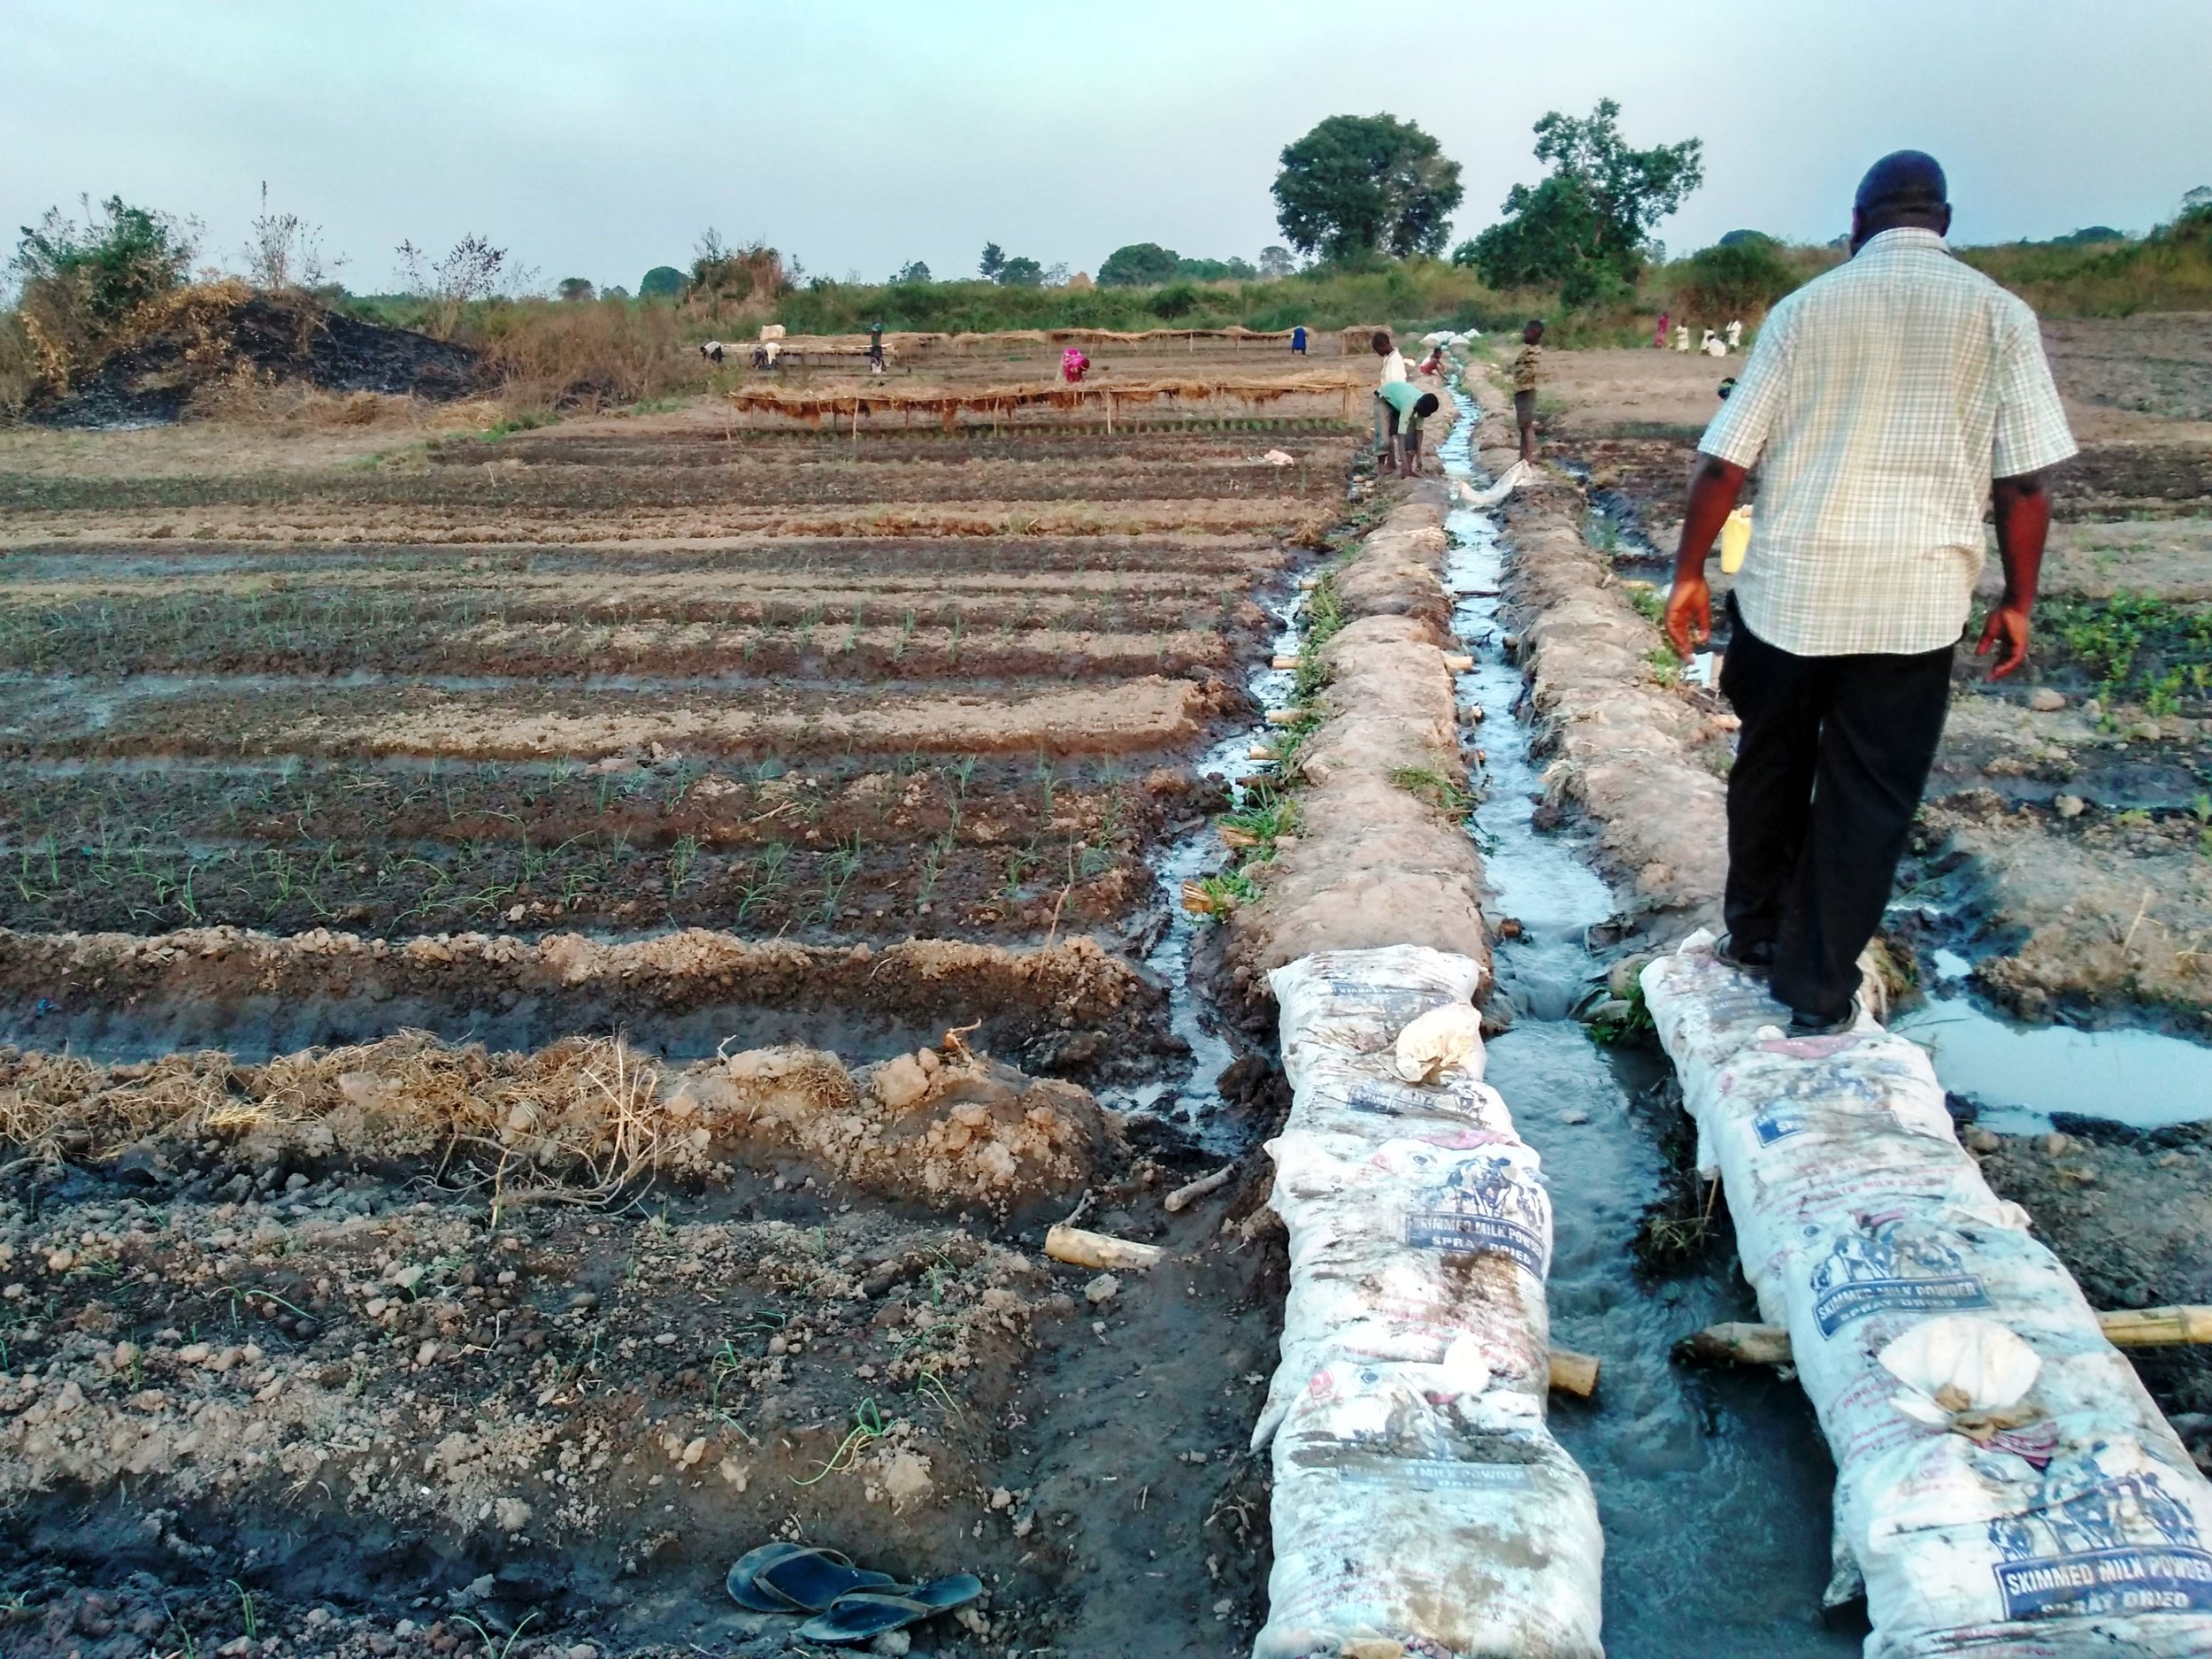 The raised and terraced main canal, constructed of bags filled with soil and lined to reduce seepage, runs down the slope within the irrigated vegetable plots. Members of the irrigation group contribute towards the maintenance of this shared system and get, in return, a plot within the irrigable area where they can grow vegetables.